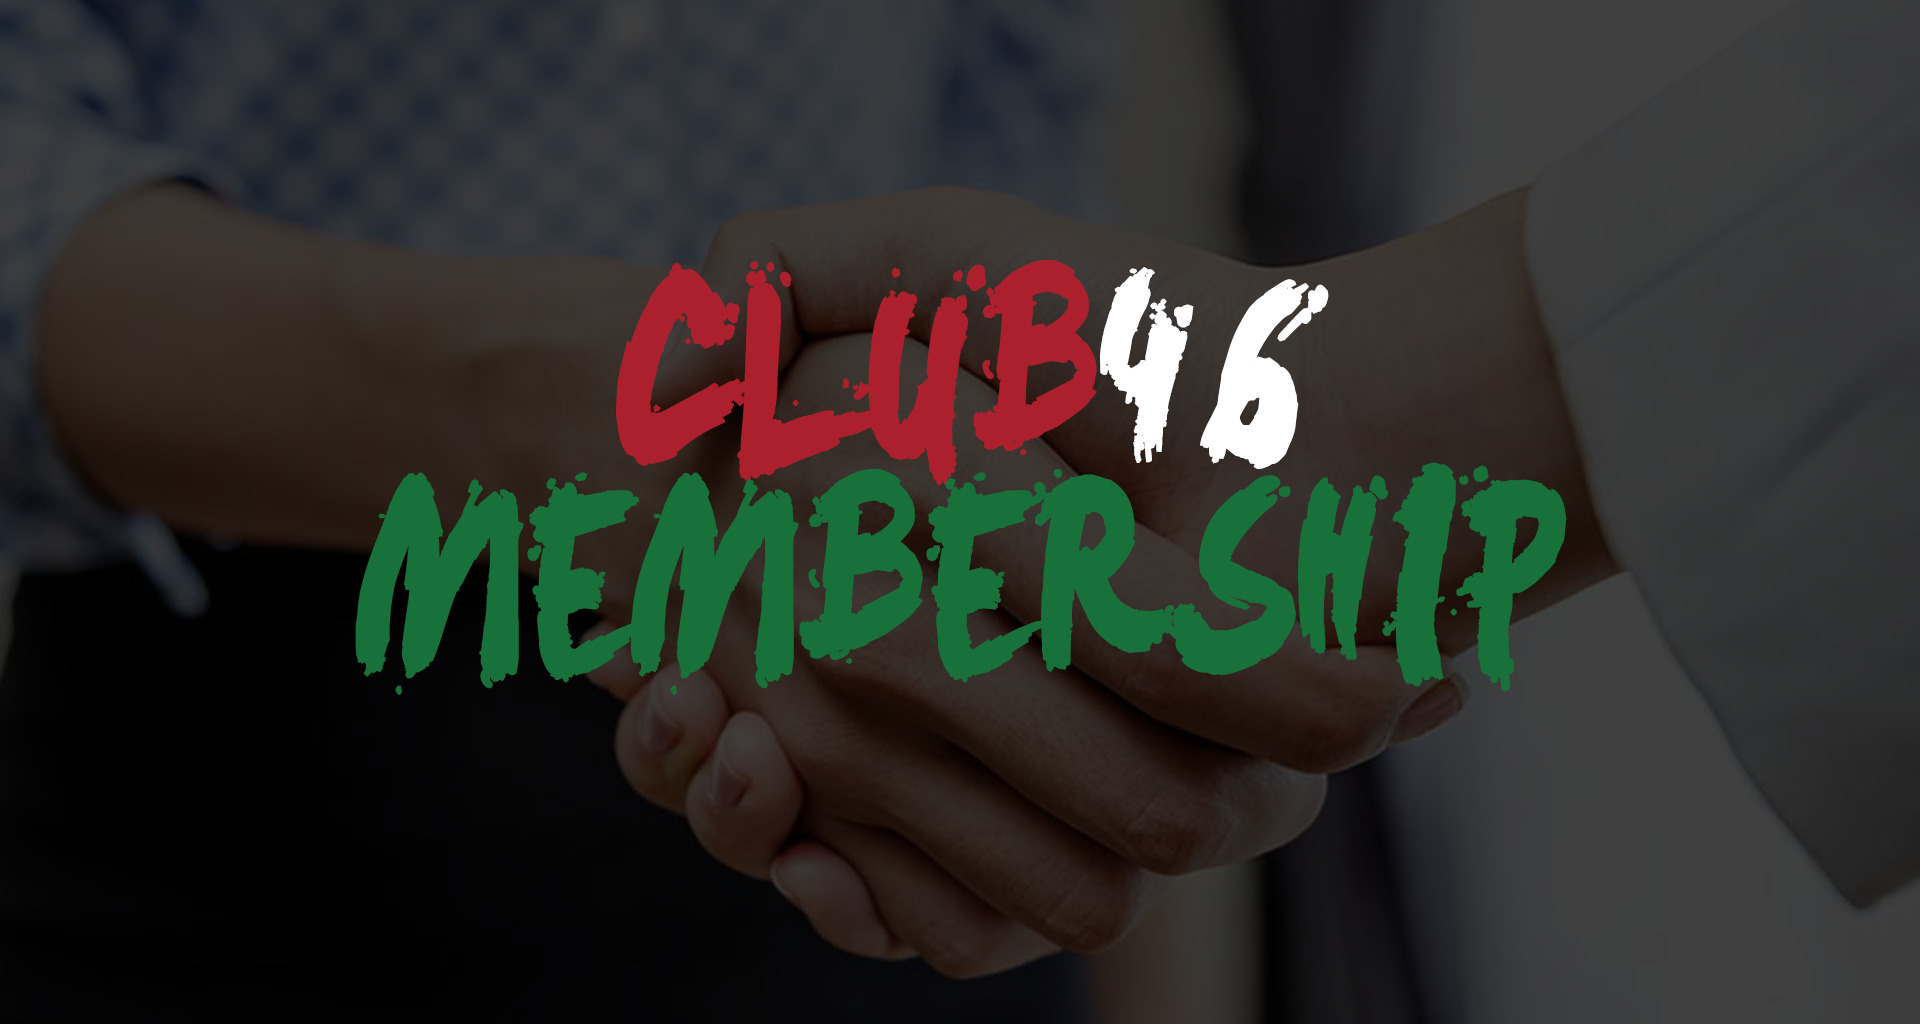 https://wilmslowcricketclub.com/wp-content/uploads/2020/03/Club46-Membership.jpg